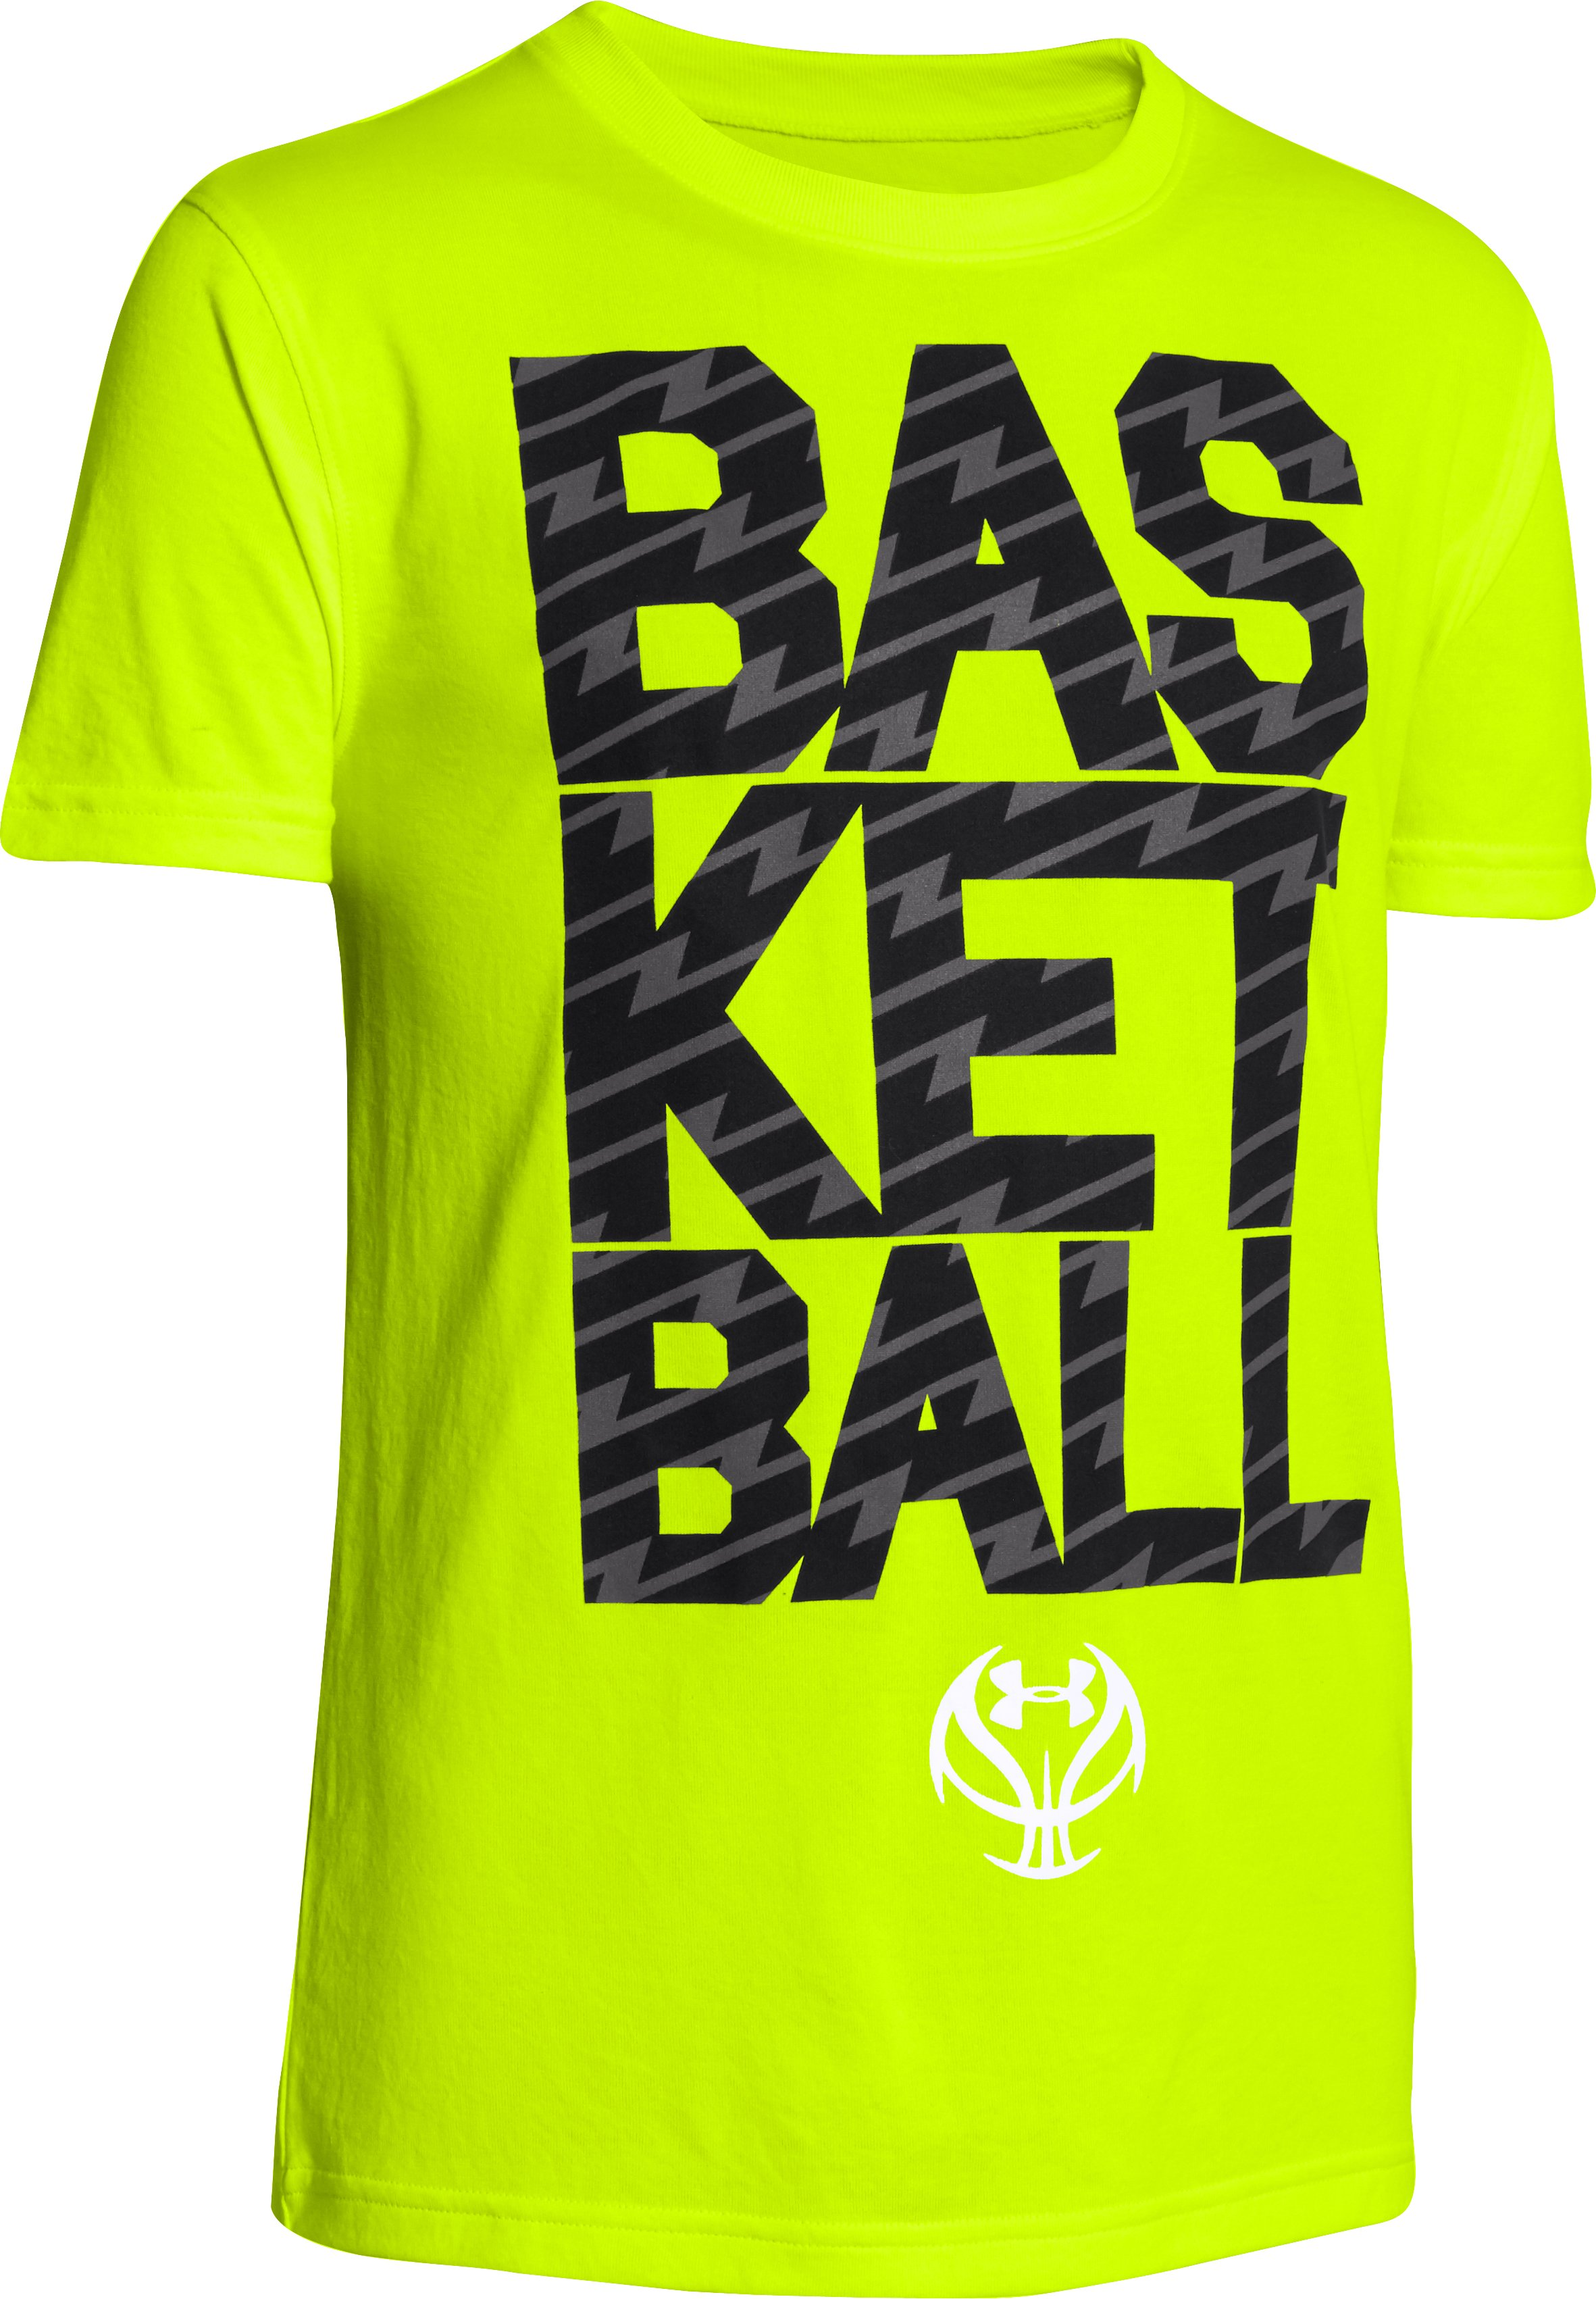 Boys' UA Floor General T-Shirt, High-Vis Yellow, zoomed image